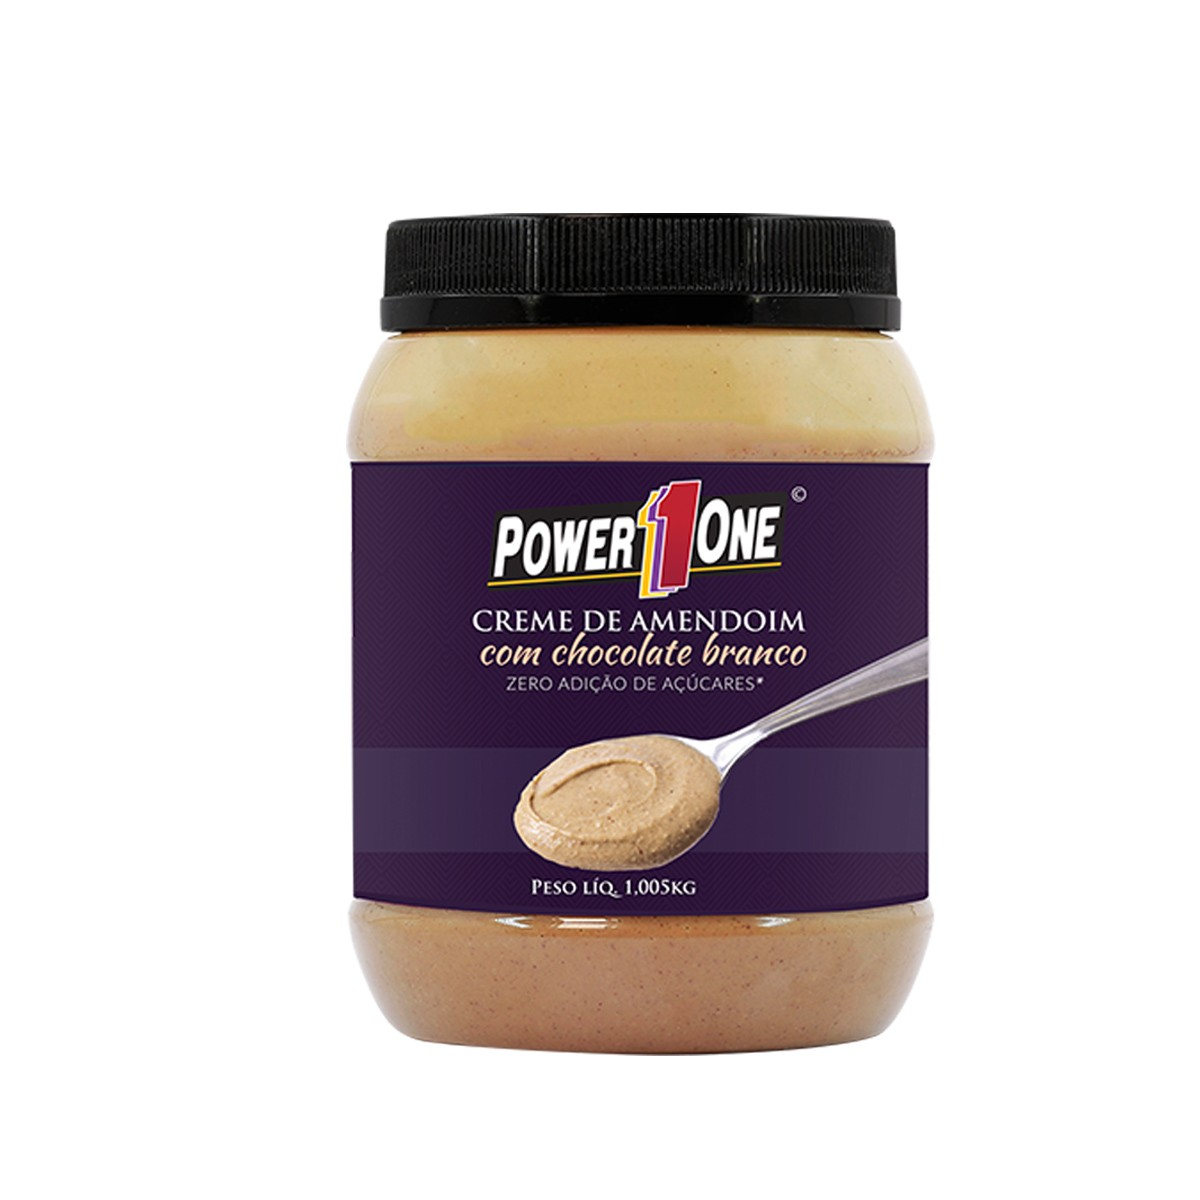 Creme de Amendoim com Chocolate Branco 1,005kg - Power1One